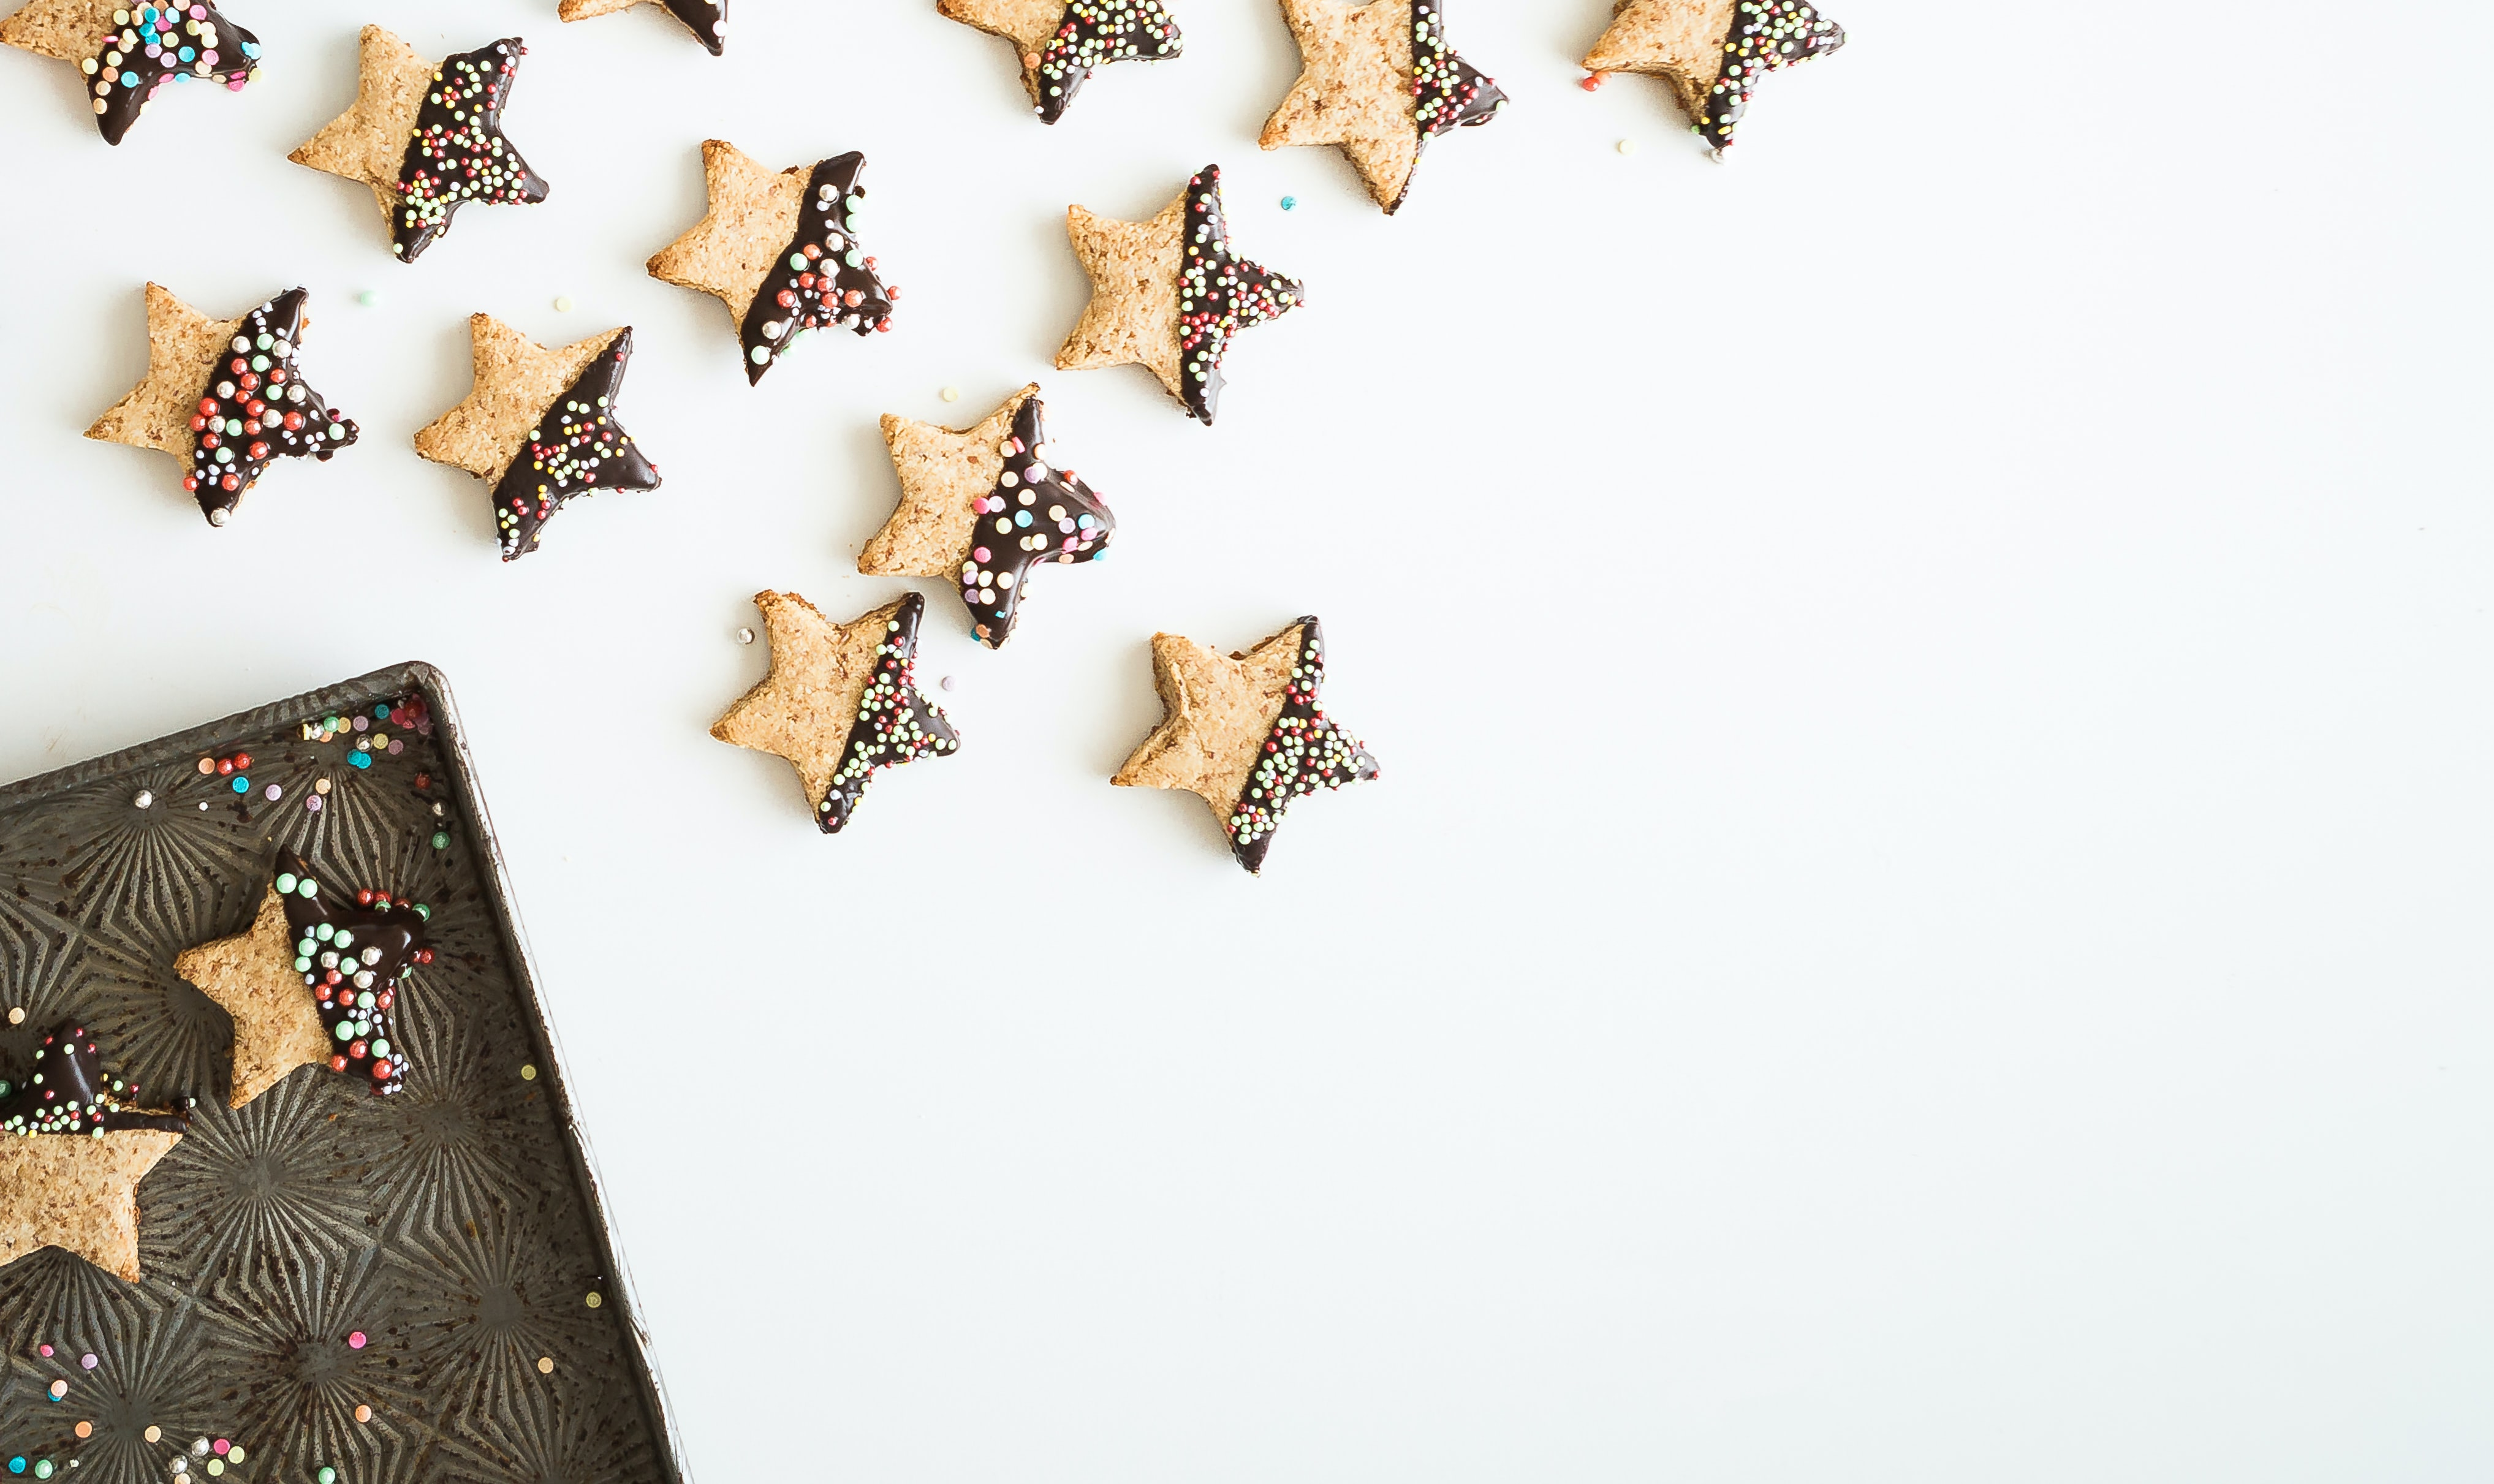 star-shape cookies with chocolate fillings